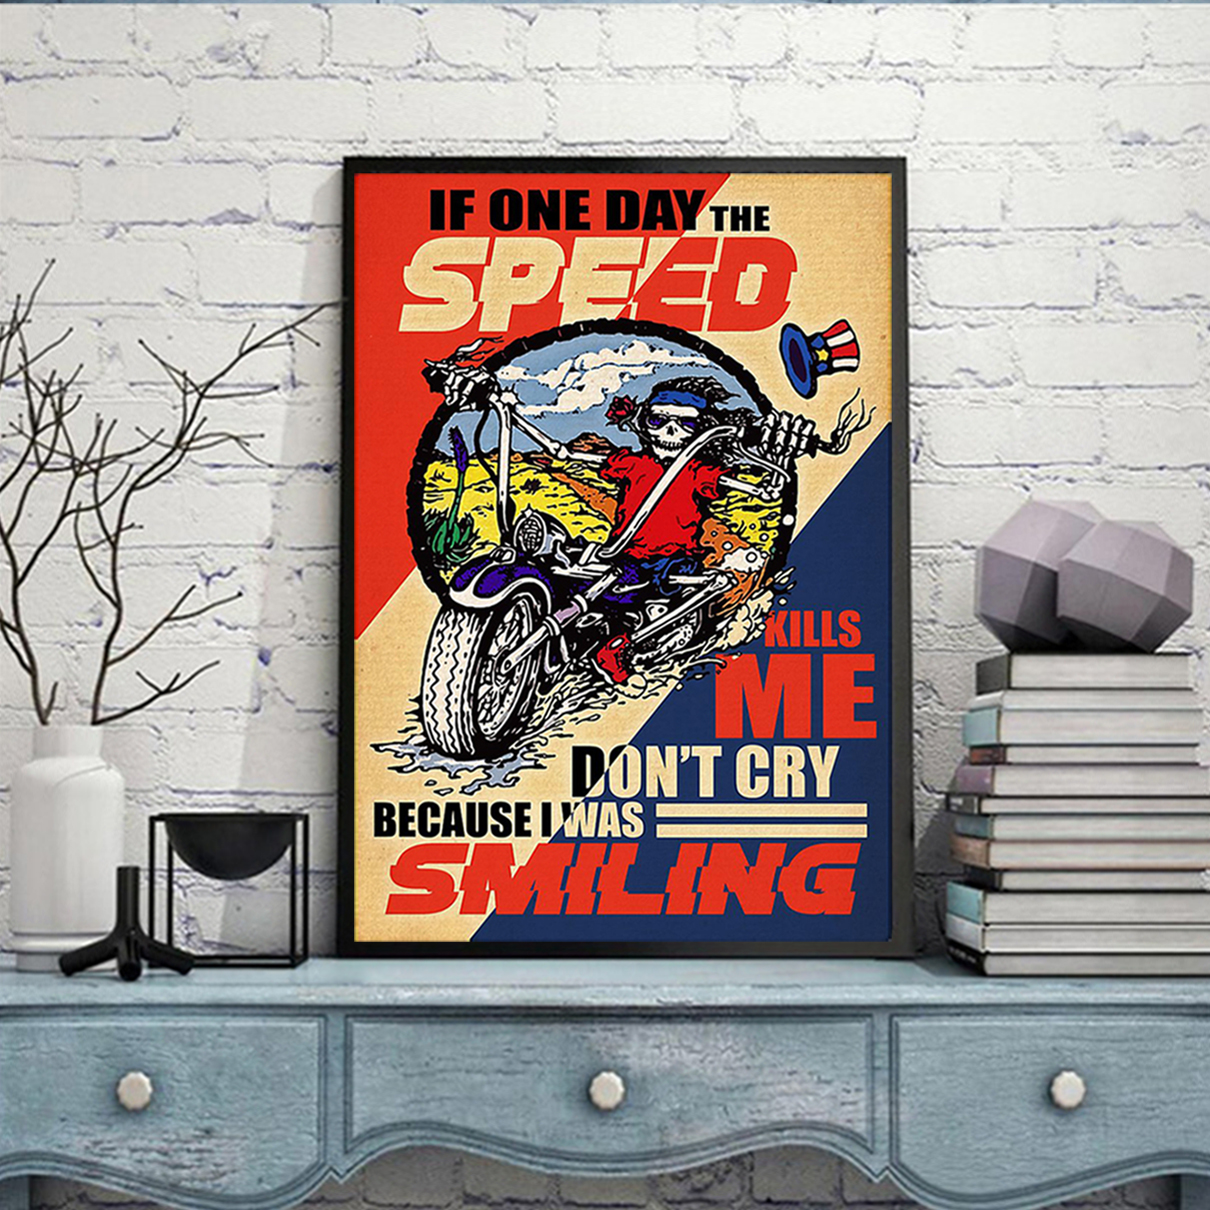 If one day the speed kills me don't cry because i was smiling poster A2